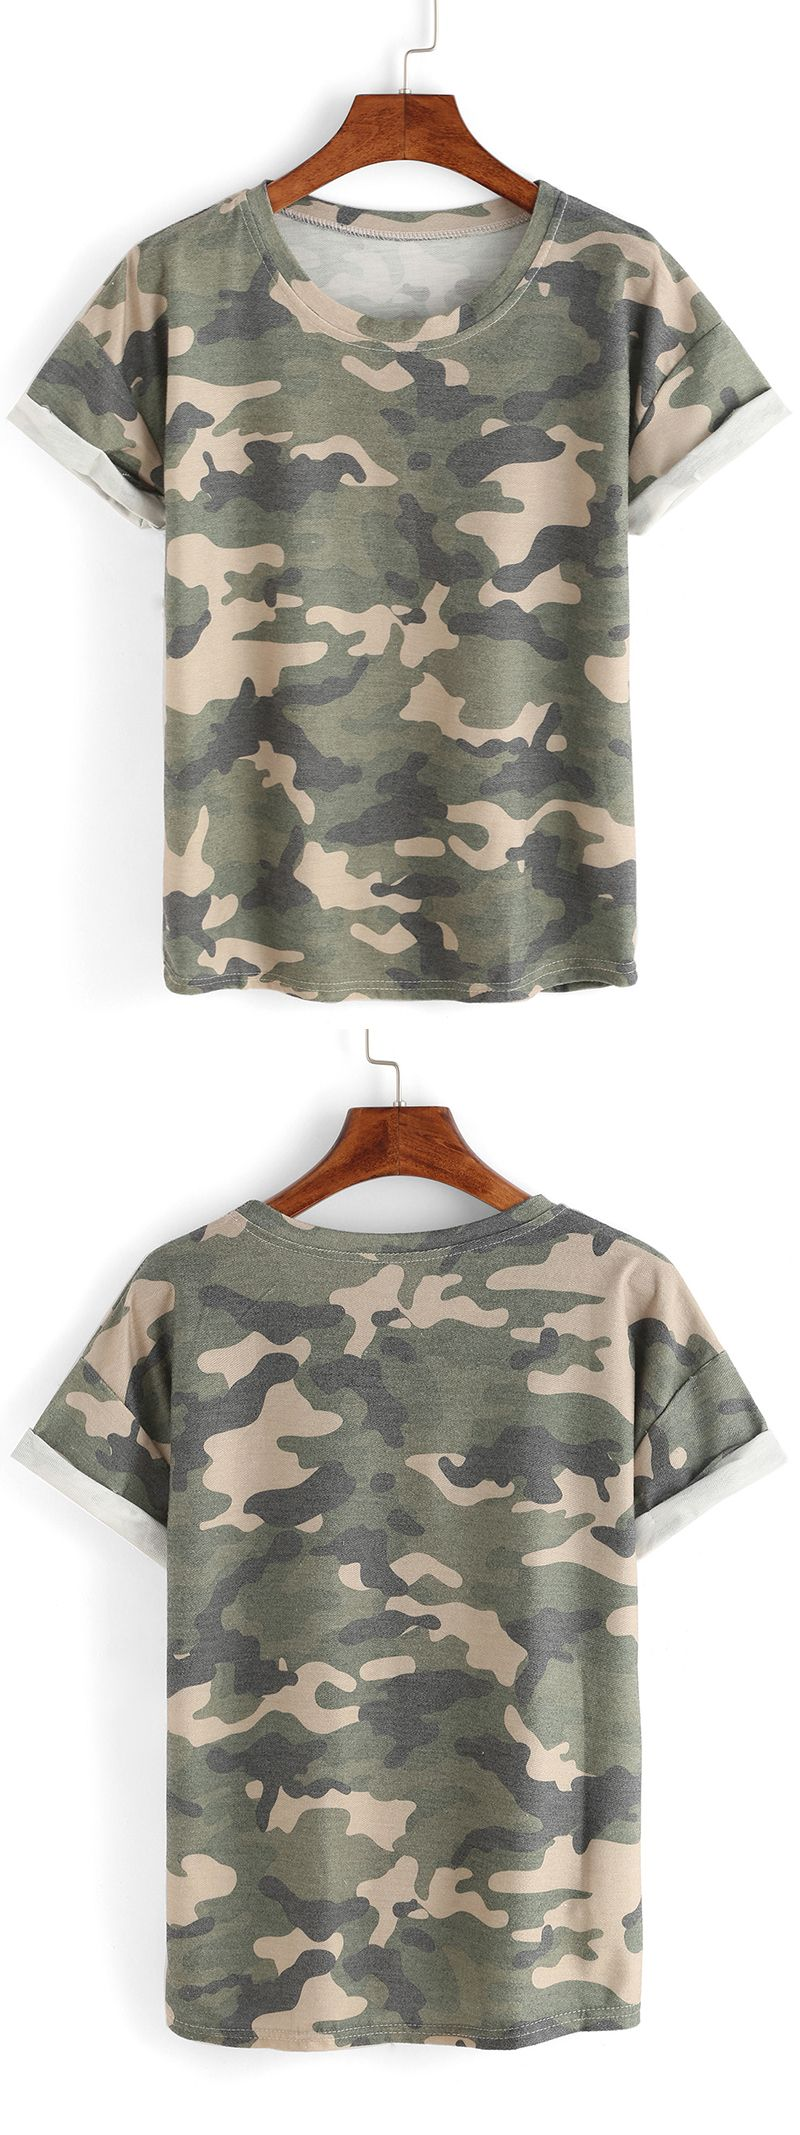 Summer basic tops-Rolled Sleeve Camouflage T-shirt. Soft loose design and ployester material. US$6.99.